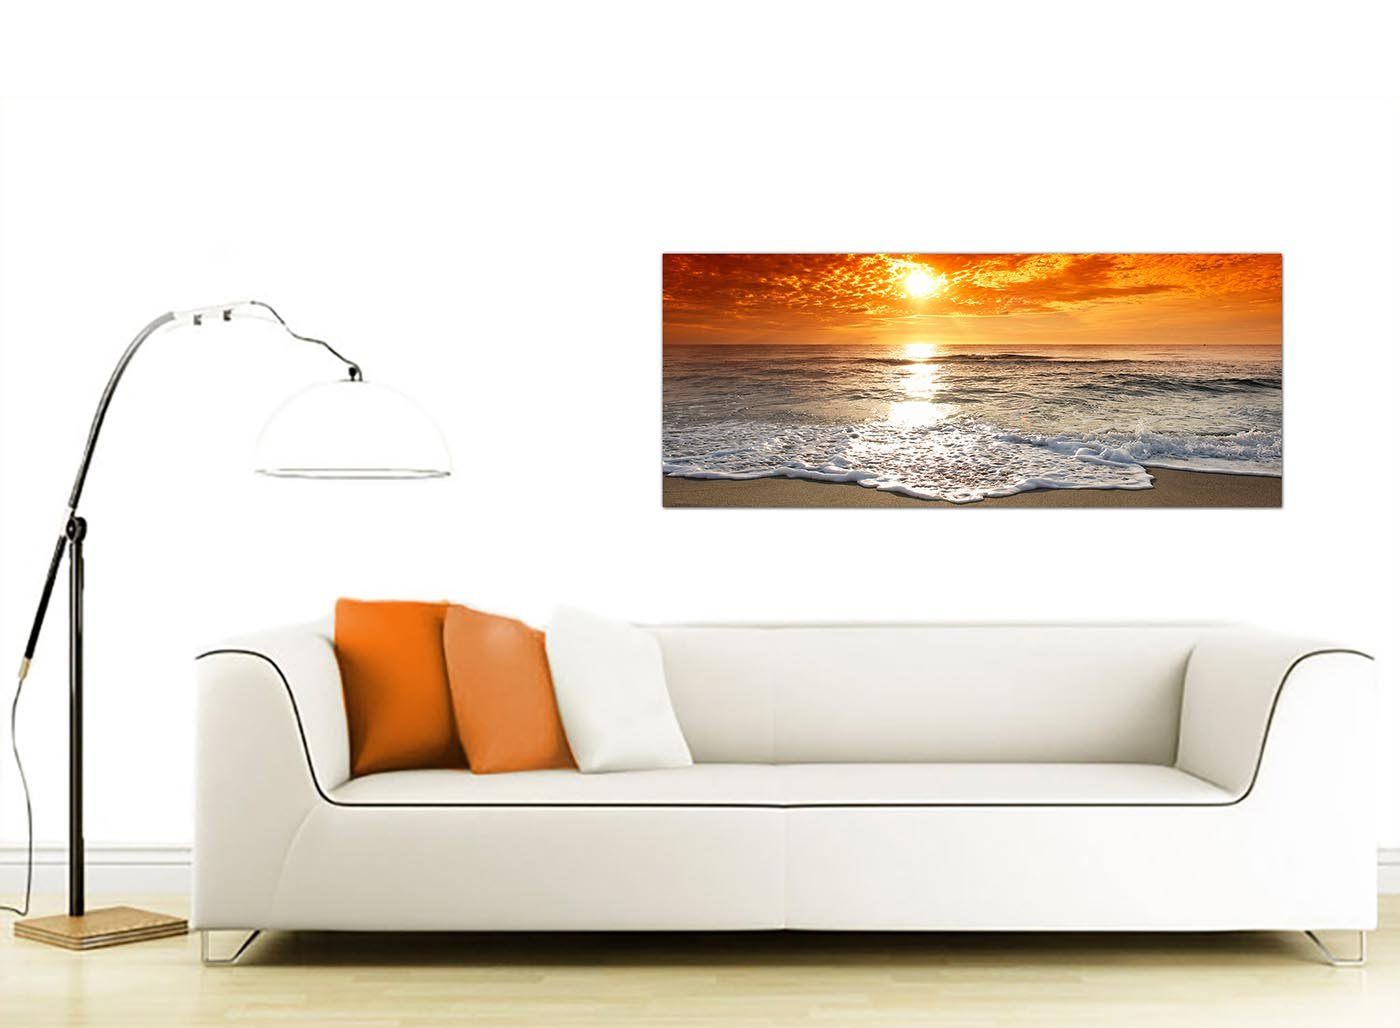 cheap canvas pictures of a tropical beach sunset for your bedroom  - cheap canvas pictures of a tropical beach sunset for your bedroom panoramic seaside wall art    wallfillers® amazoncouk kitchen home